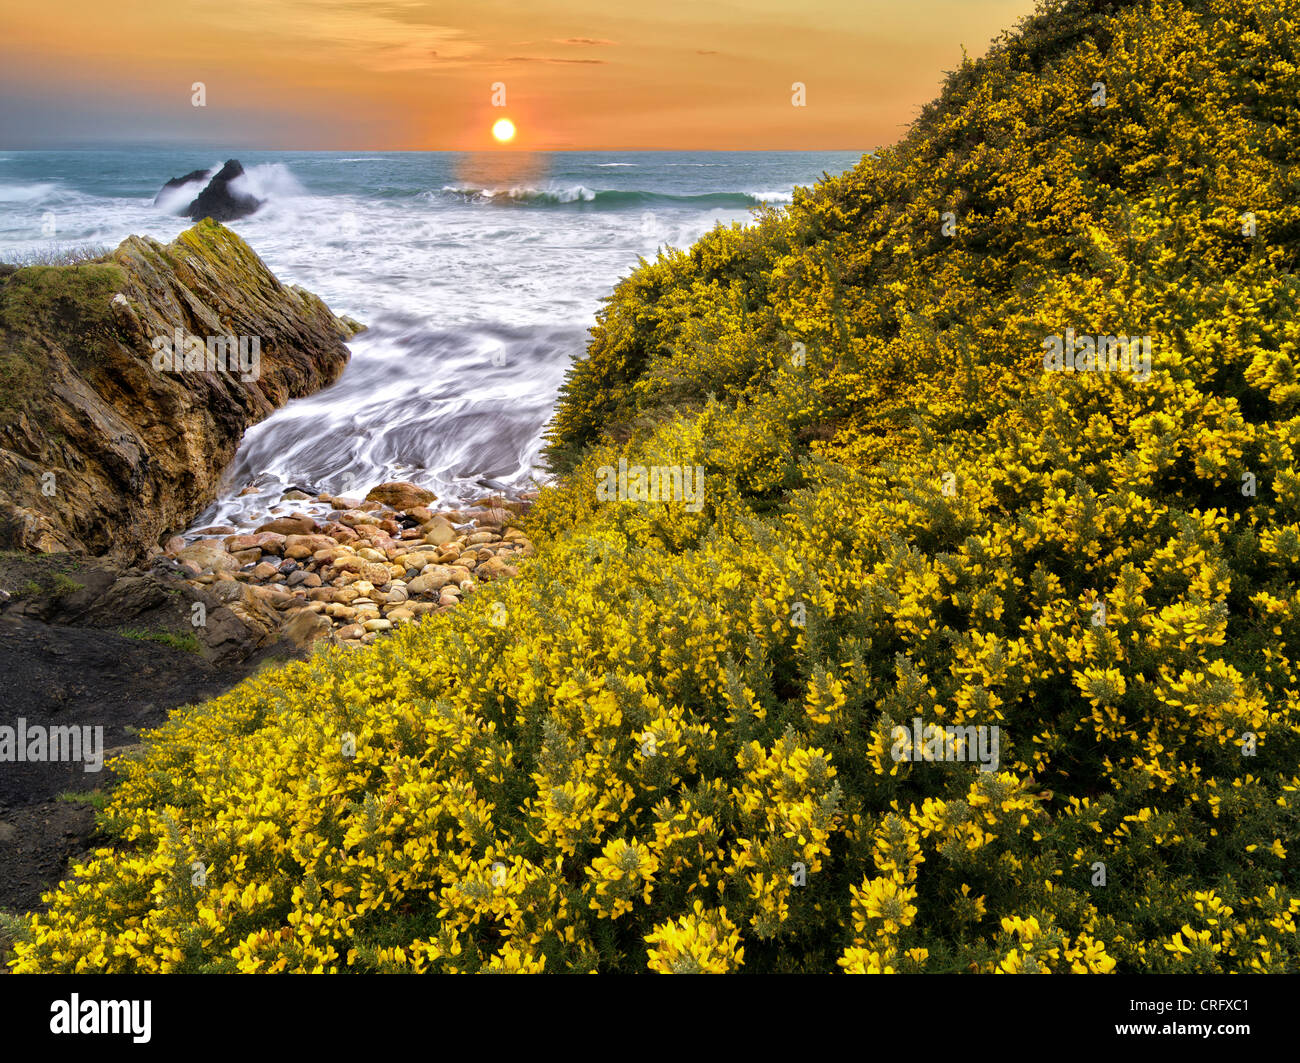 Blooming gorse and waves. Harris Beach State Park, Oregon (This image is a photo illustration, and was created from - Stock Image